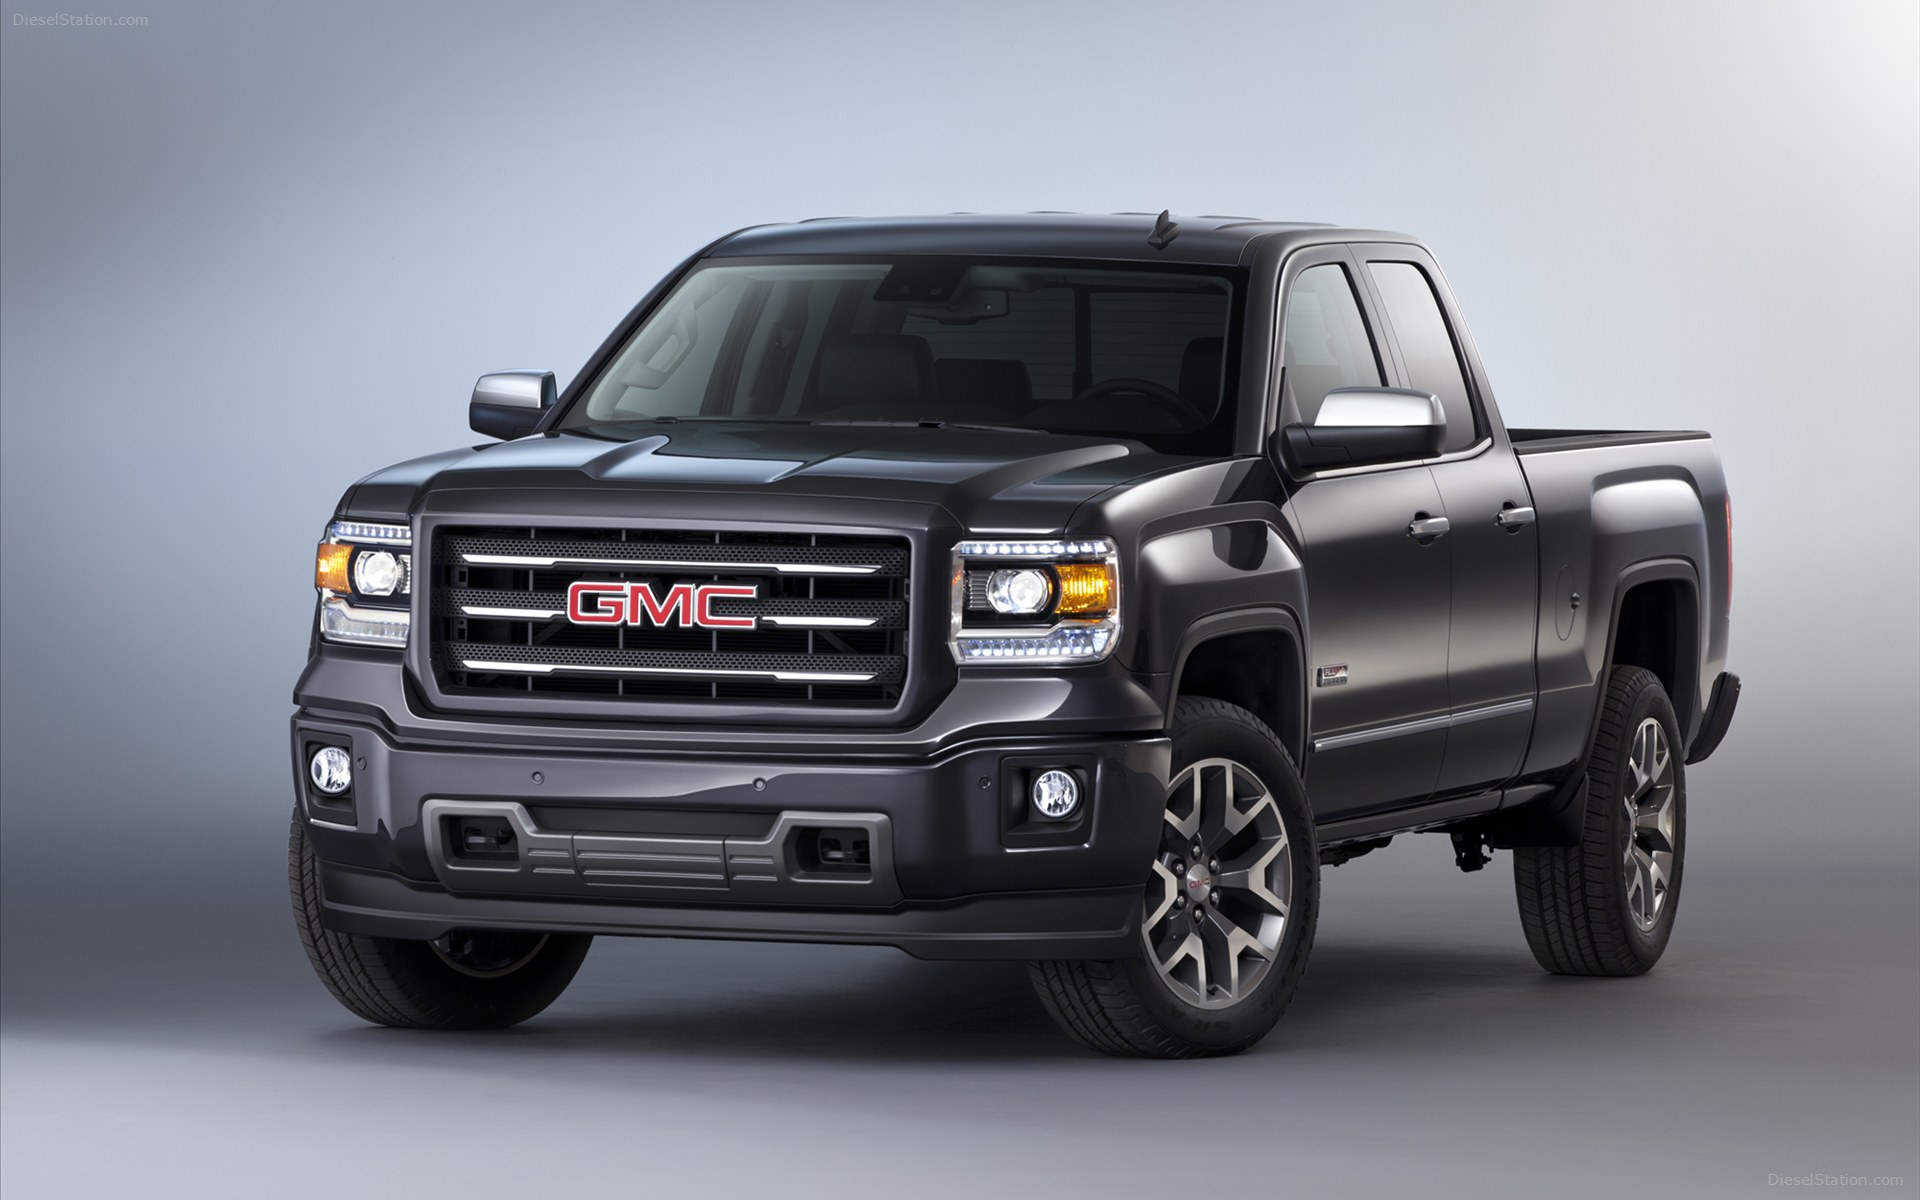 Gmc sierra photo - 4